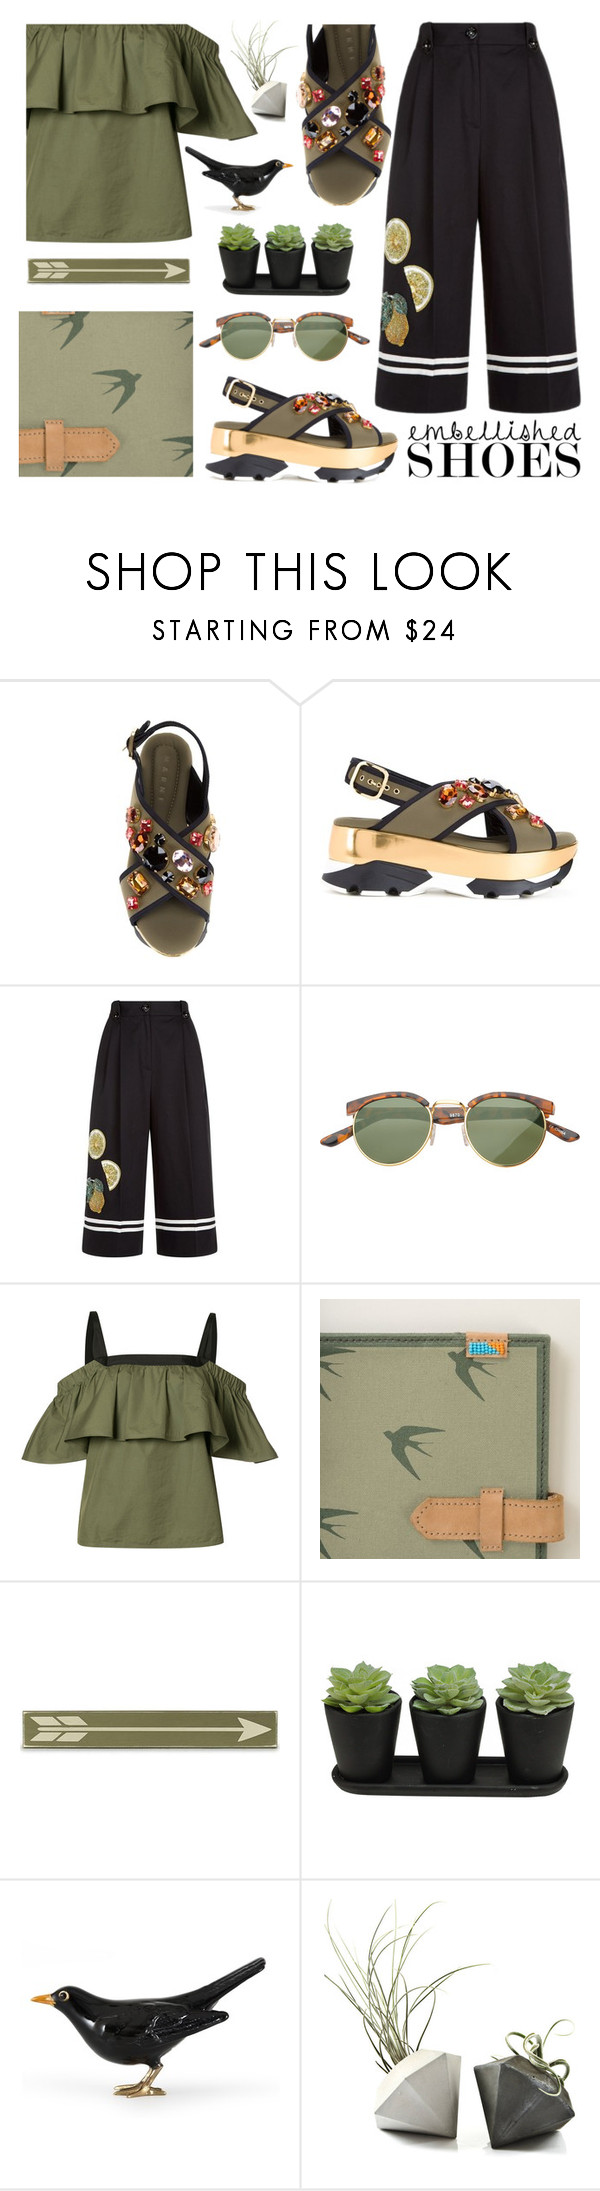 """Embellished Shoes"" by bysc ❤ liked on Polyvore featuring Marni, Dolce&Gabbana, SW Global, Grey by Jason Wu and Home Decorators Collection"